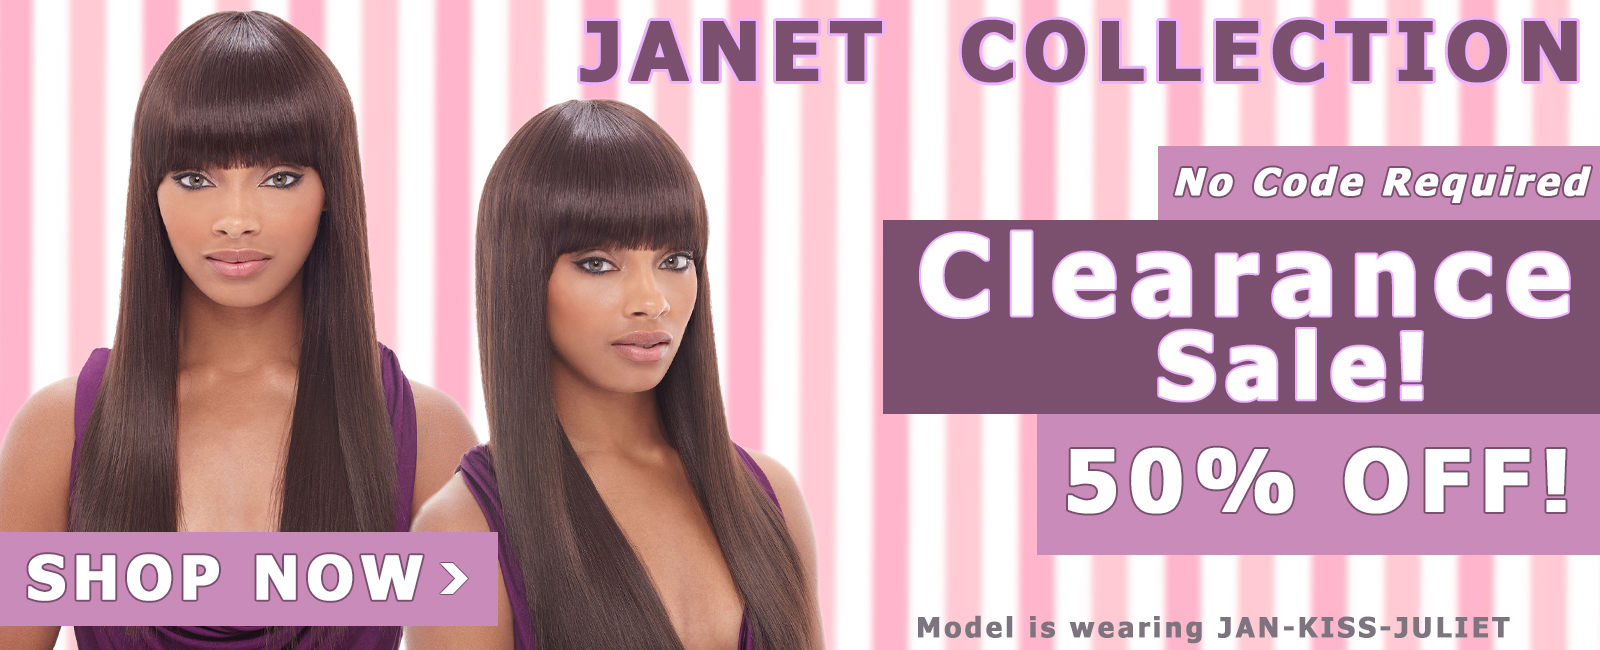 190625-hp-mobile-banner-janet-2-